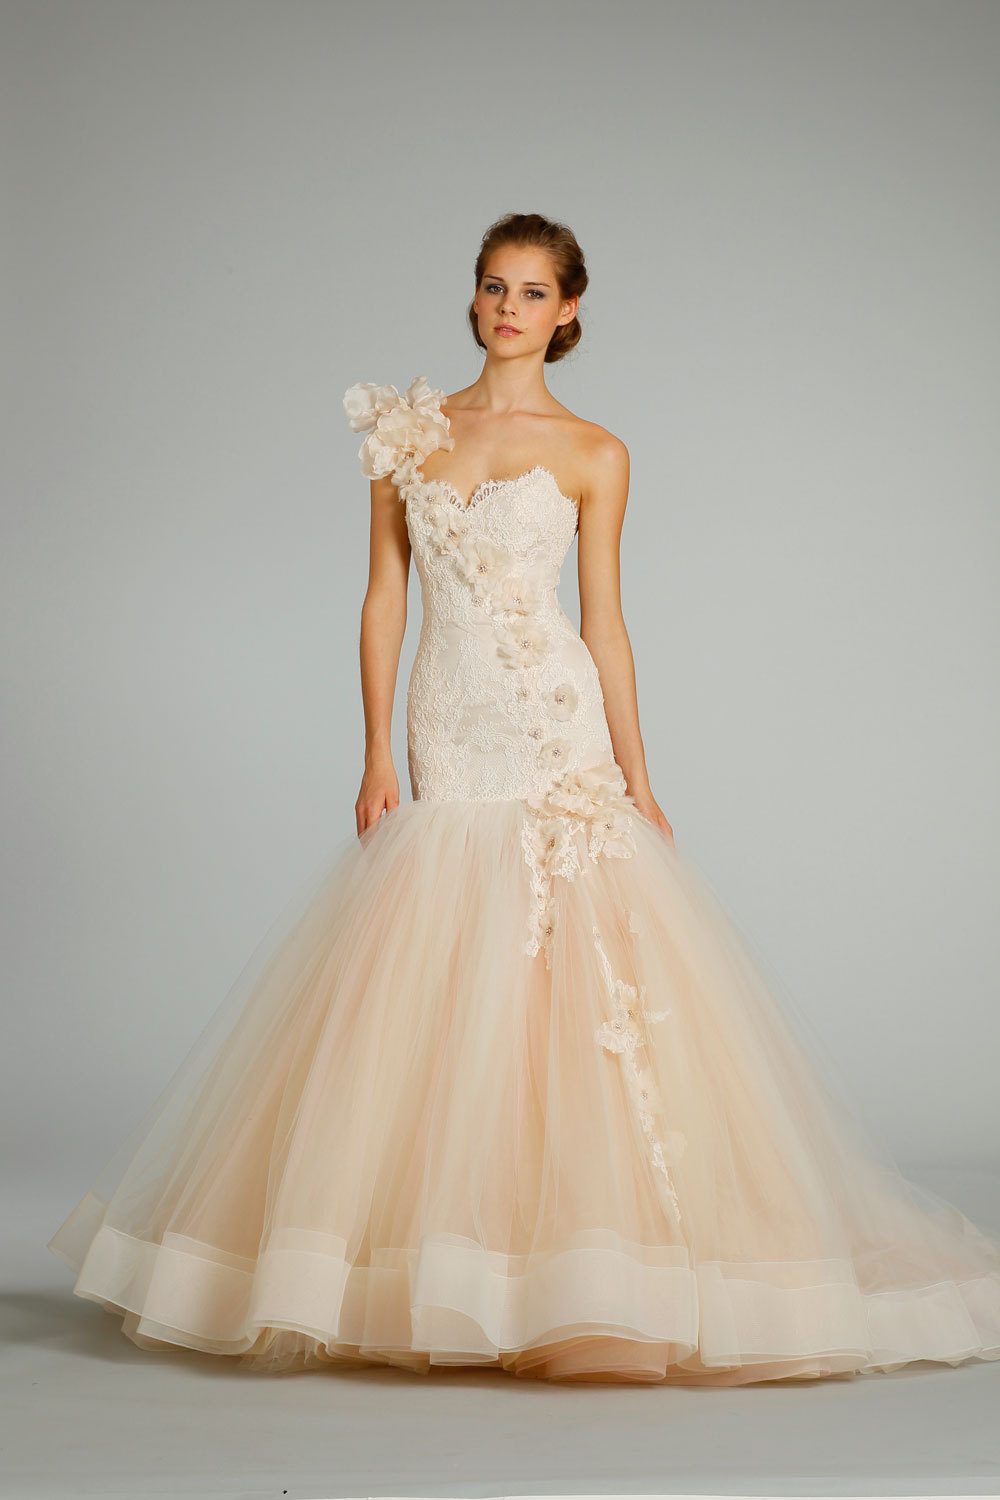 Fall-2012-wedding-dress-lazaro-bridal-gowns-3259-peach-tulle-mermaid.full